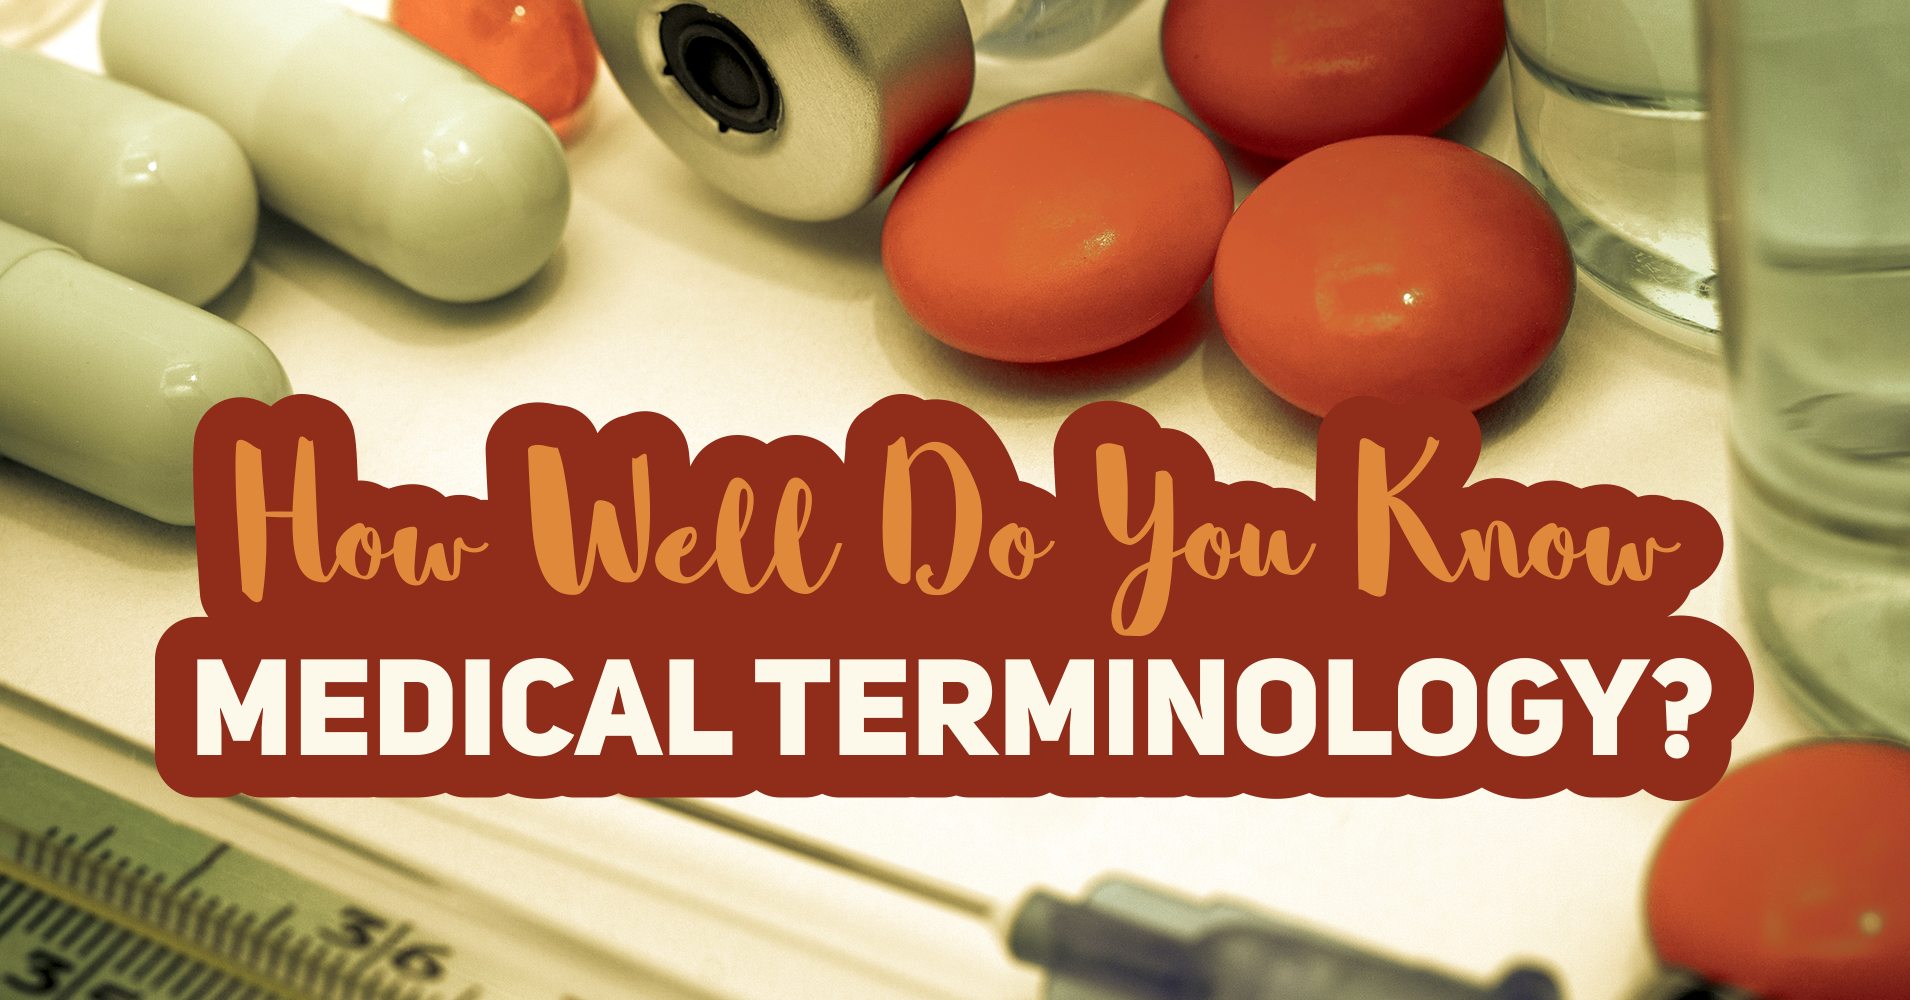 How Well Do You Know Medical Terminology? - Quiz - Quizony com